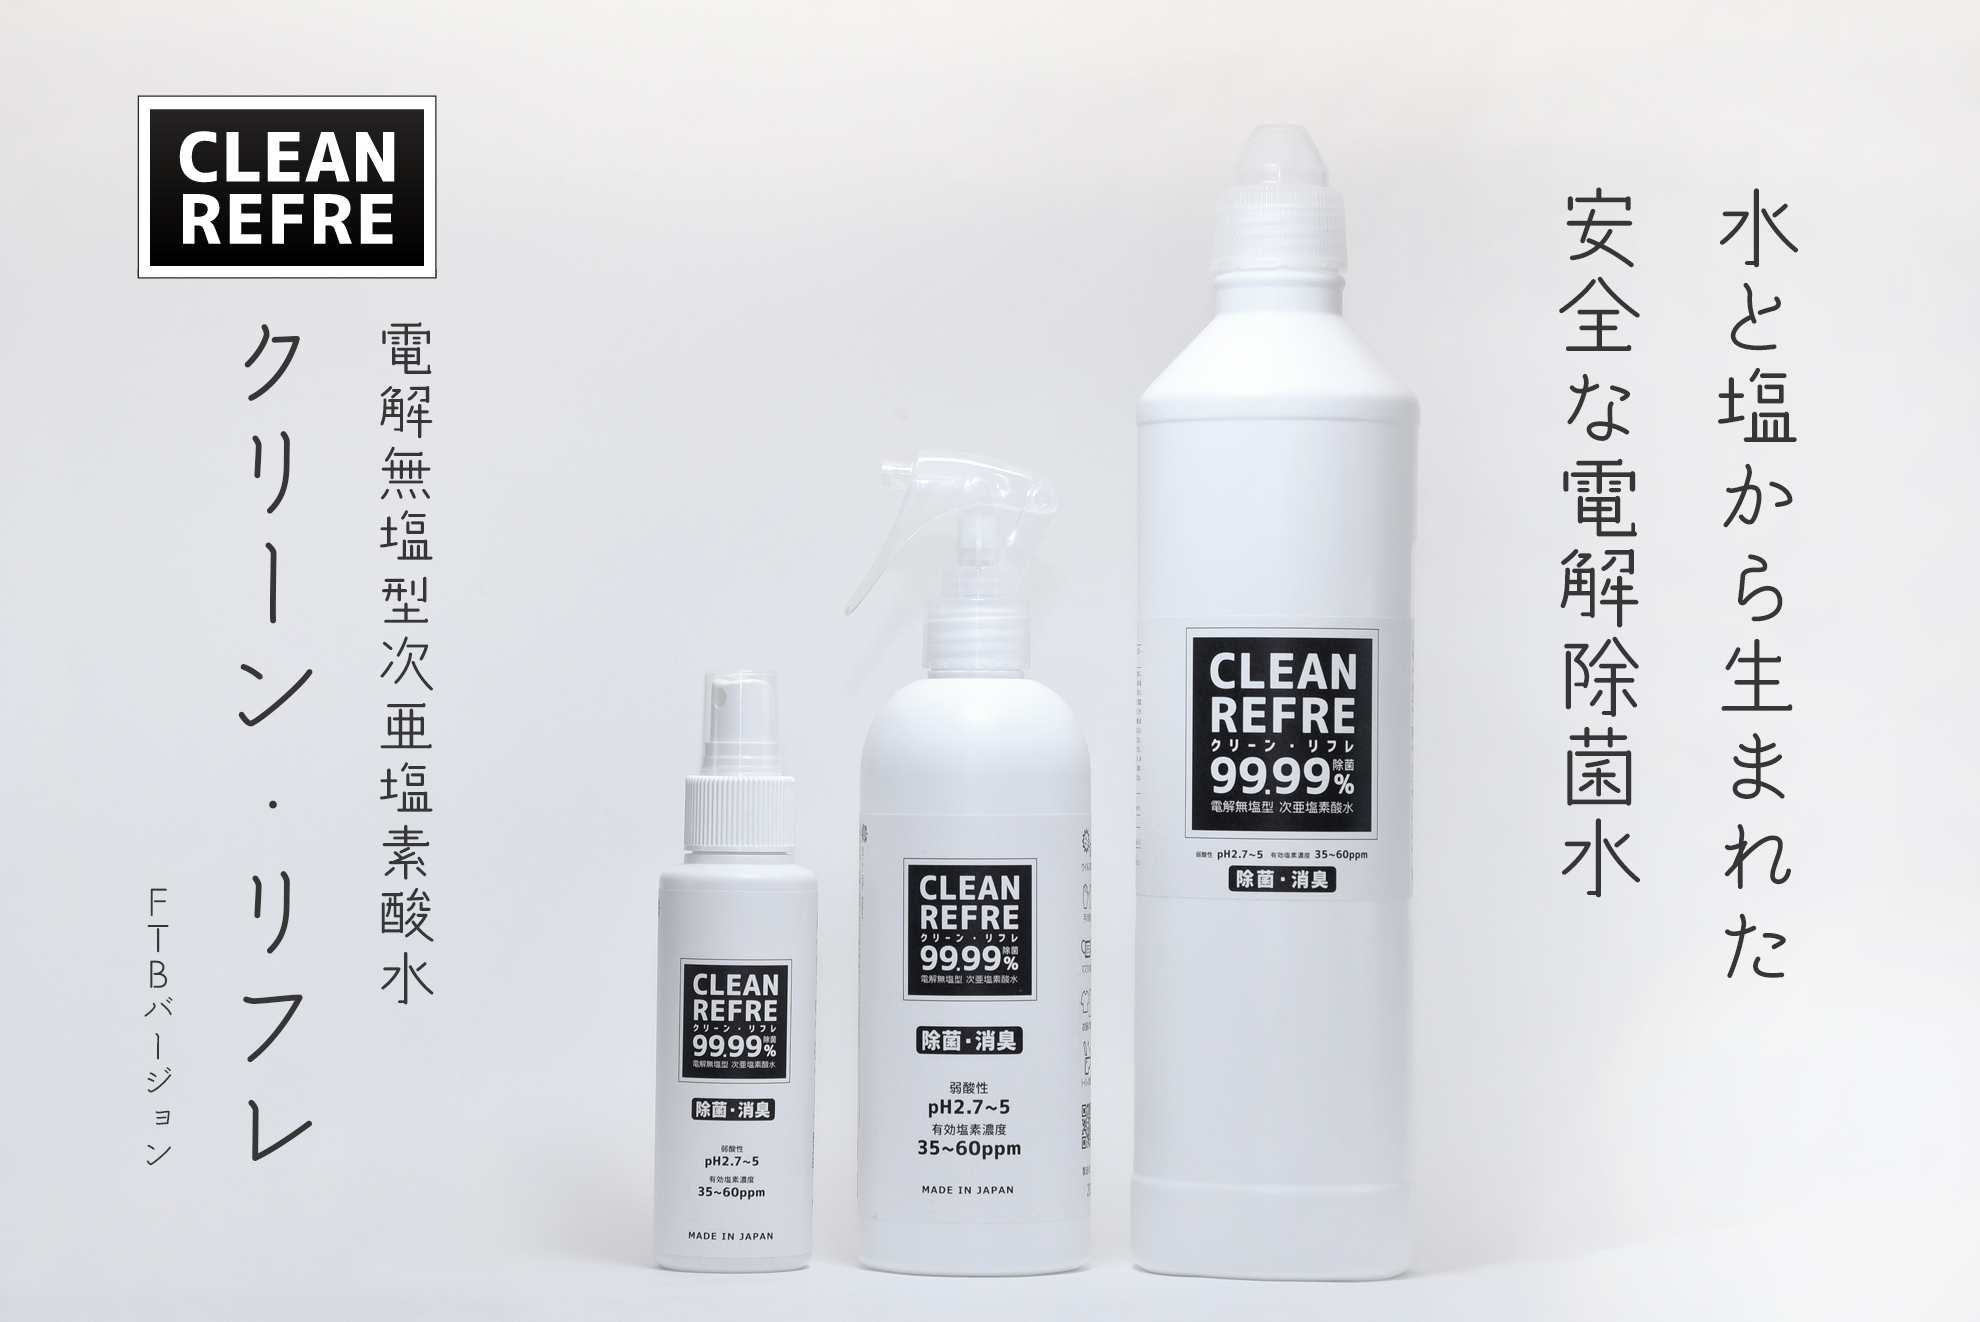 CLEAN REFRE クリーン・リフレ